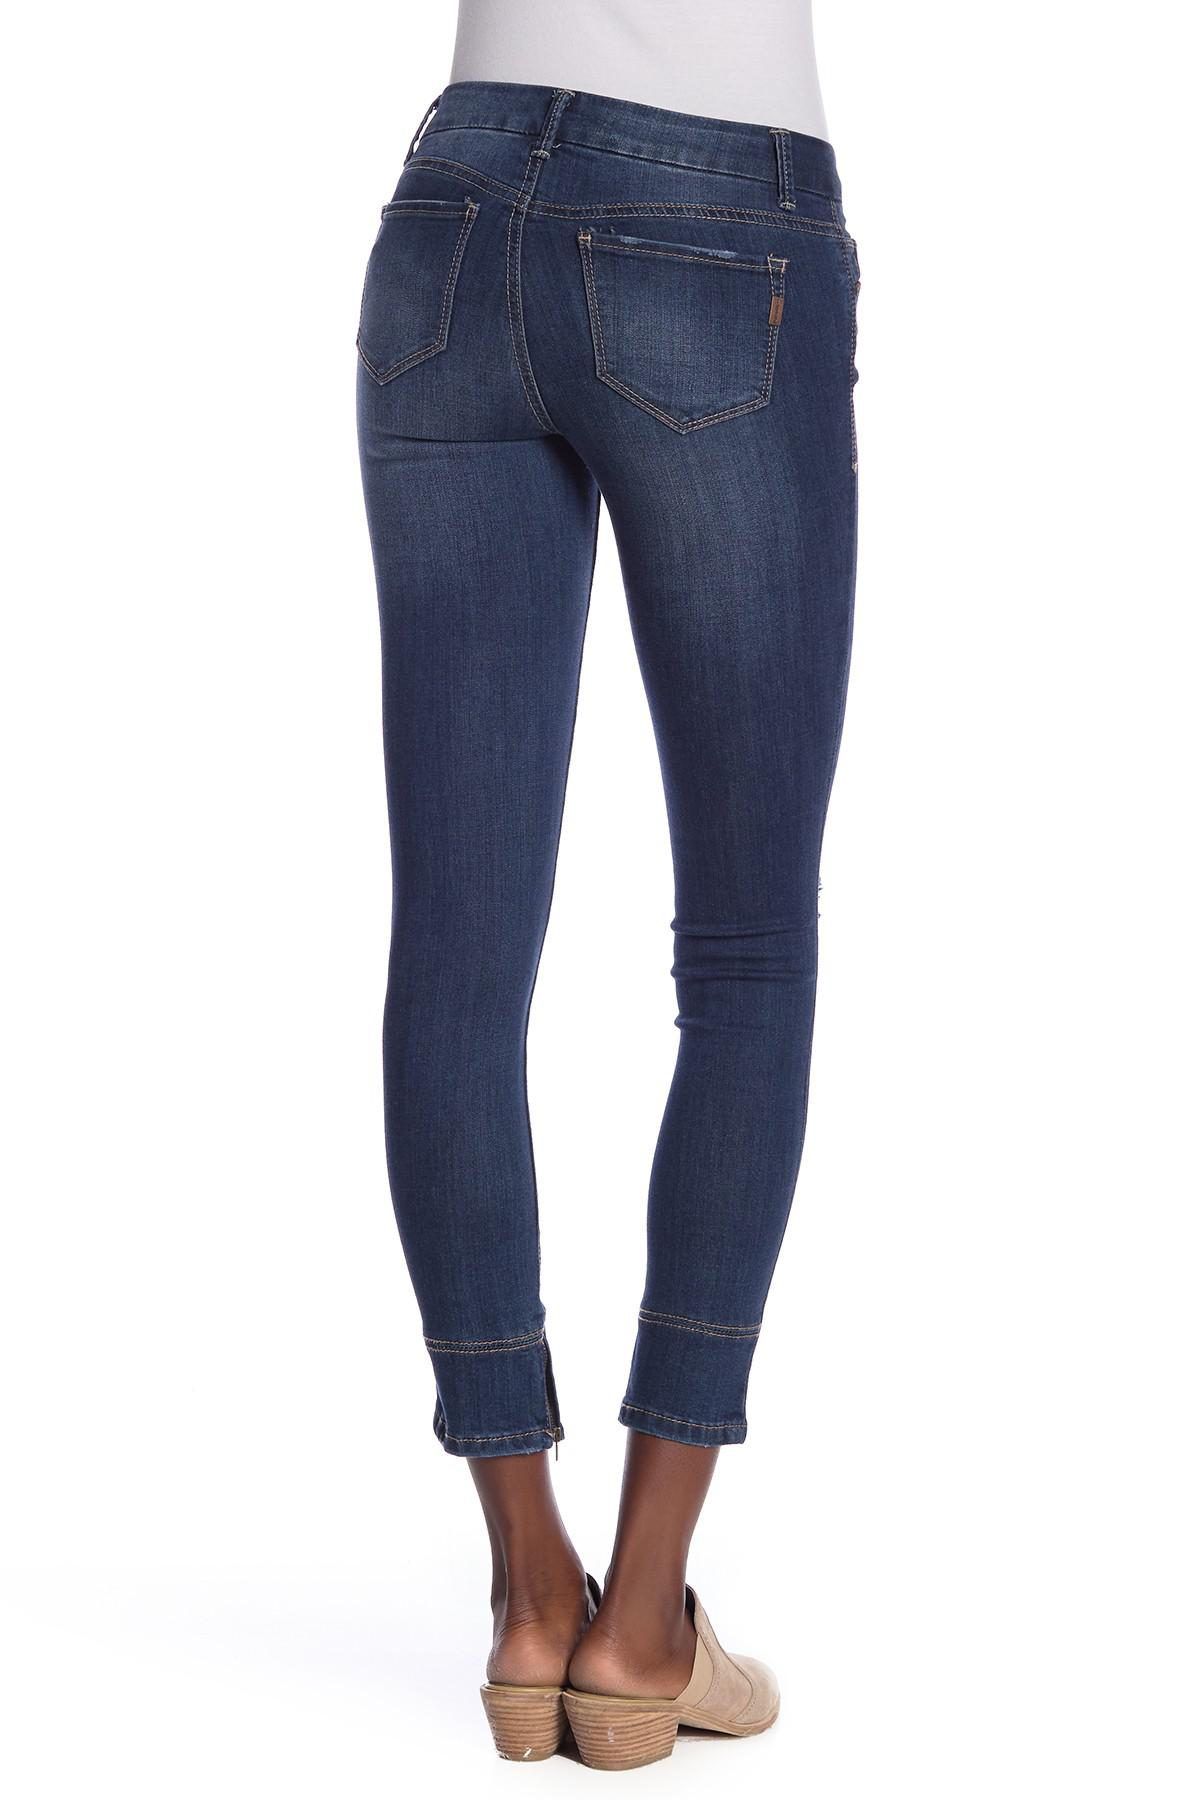 41f4ec86936 1822 Denim - Blue Ankle Zipper Skinny Jeans - Lyst. View fullscreen